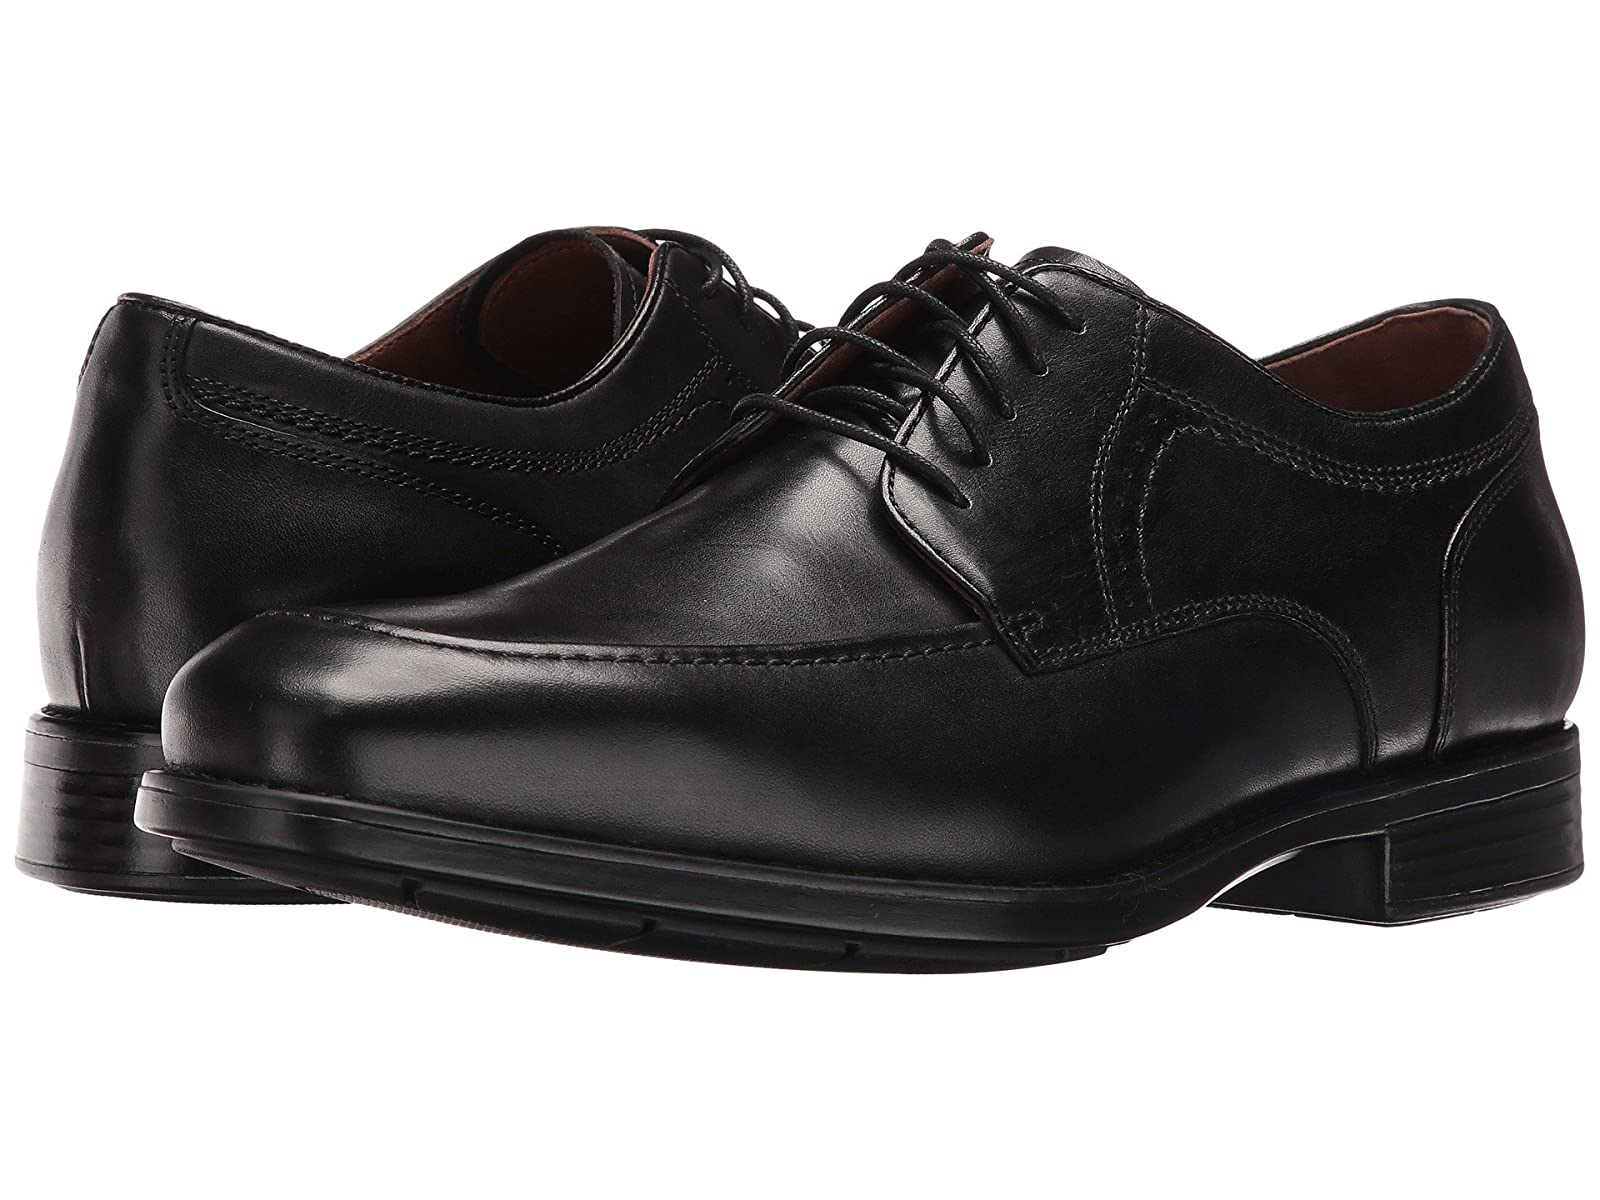 Johnston & Murphy Waterproof XC 4Branning Dress Moc OxfordAtmospheric grades have affordable shoes